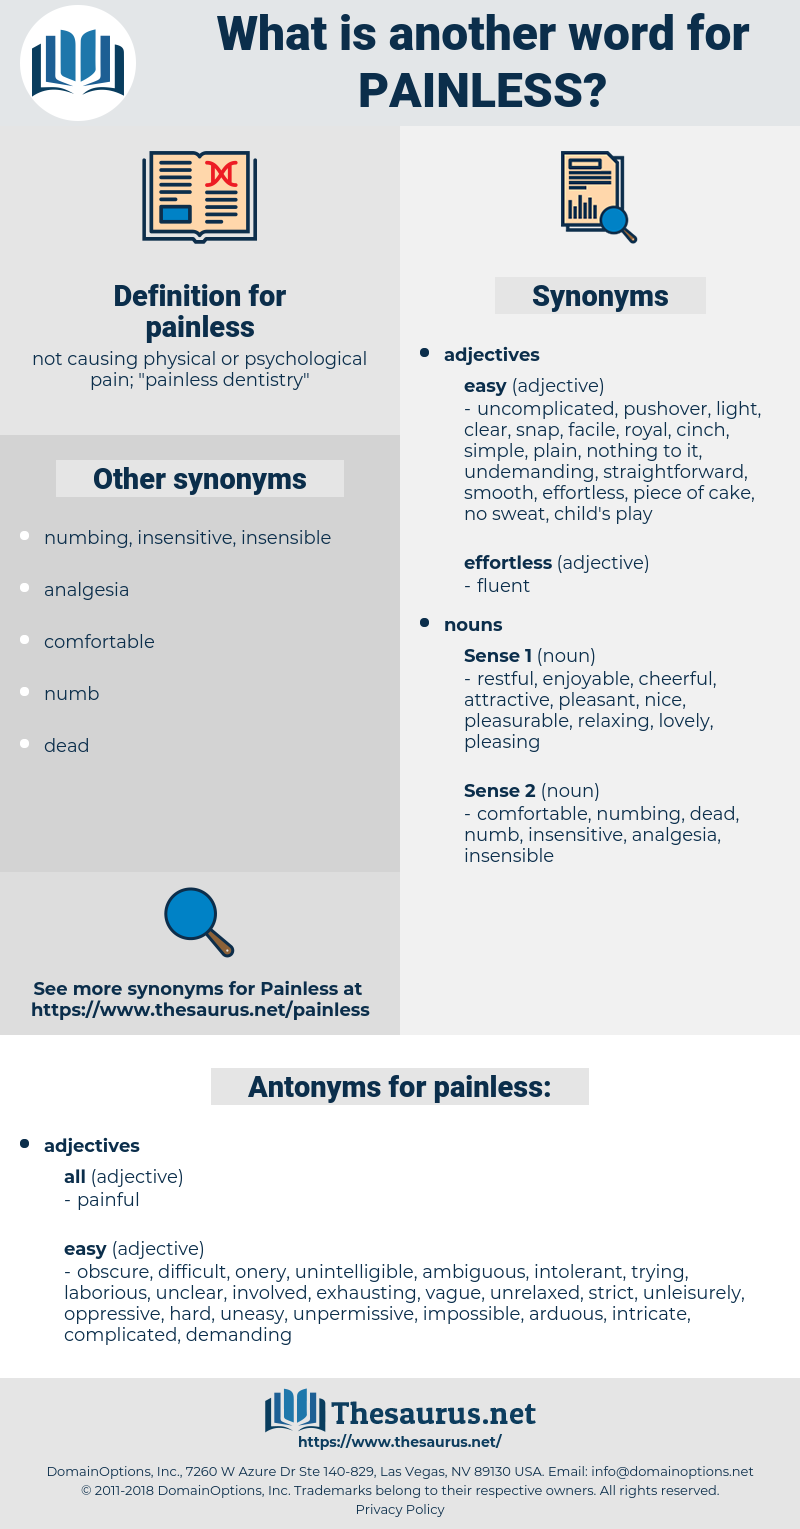 painless, synonym painless, another word for painless, words like painless, thesaurus painless